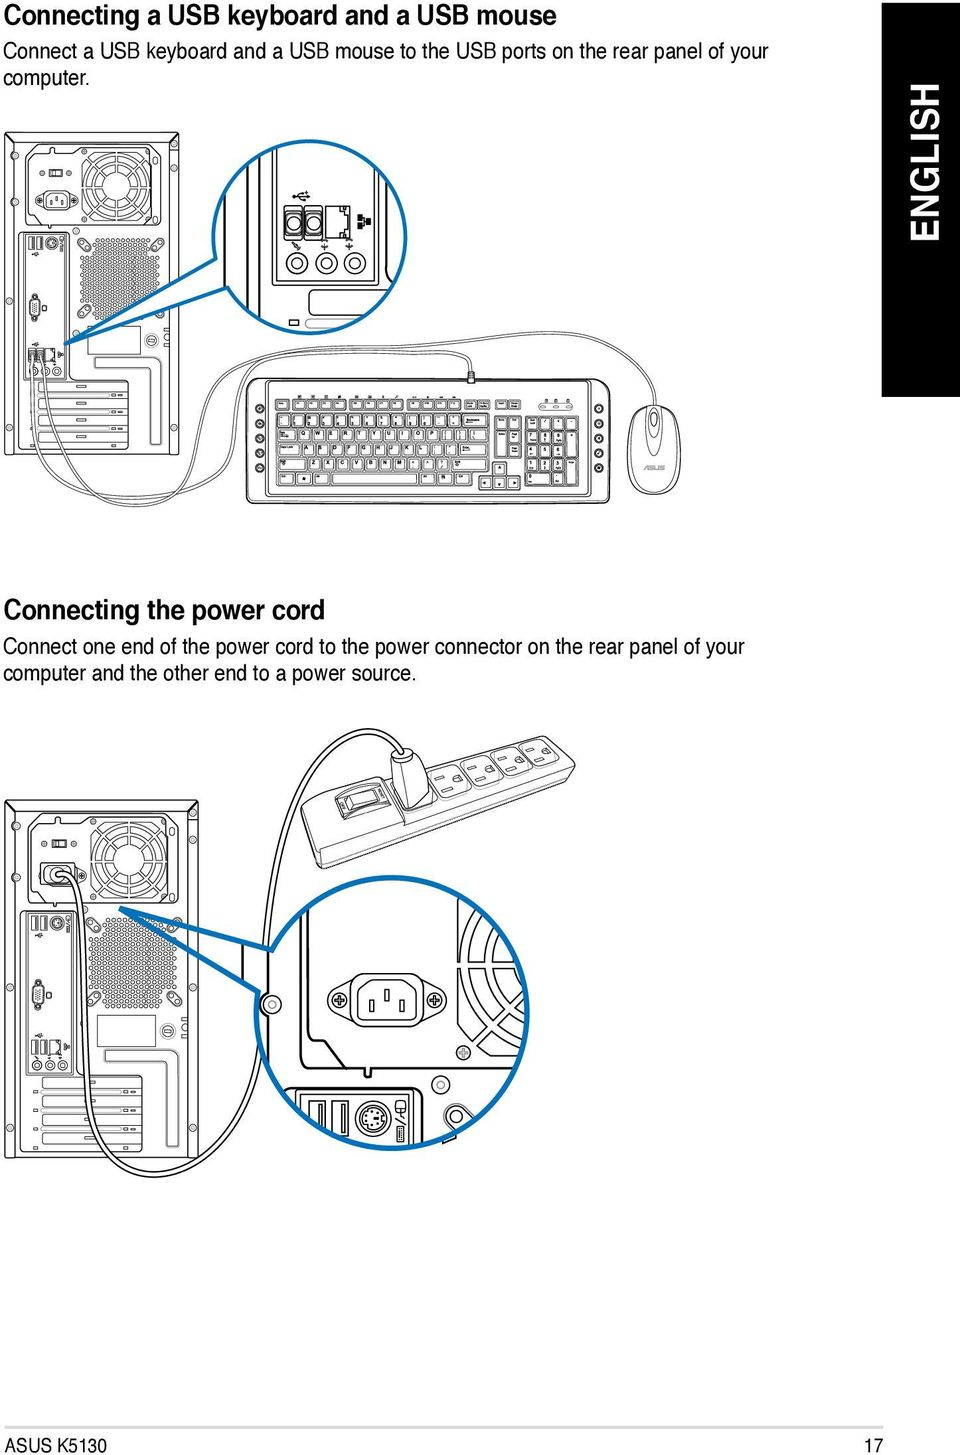 Asus Desktop Pc K5130 User Manual Pdf Usb Cable Wiring Diagram Connecting The Power Cord Connect One End Of To